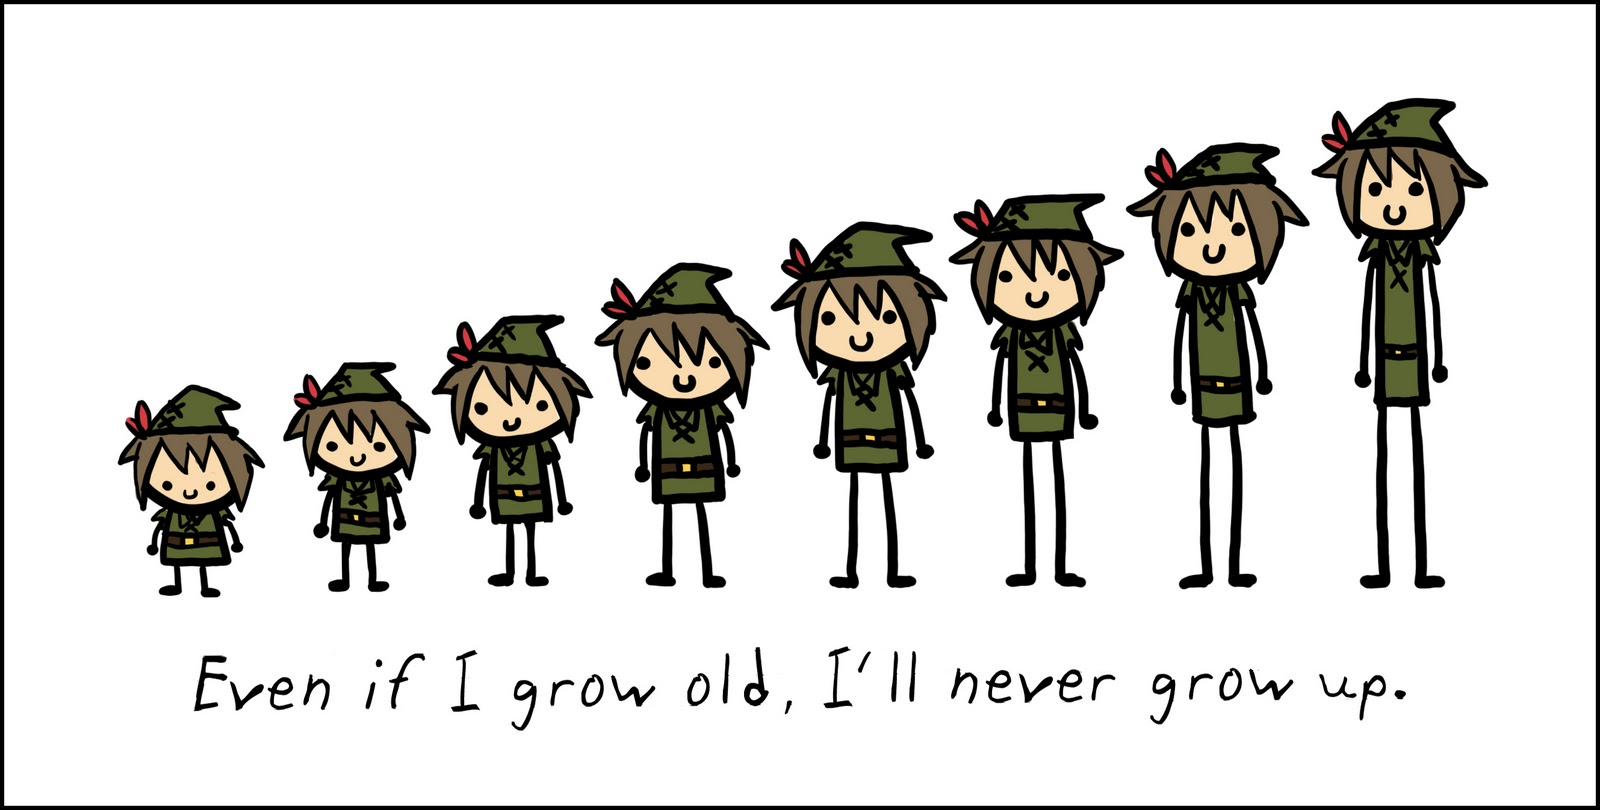 1600x810 > Grow Up Wallpapers